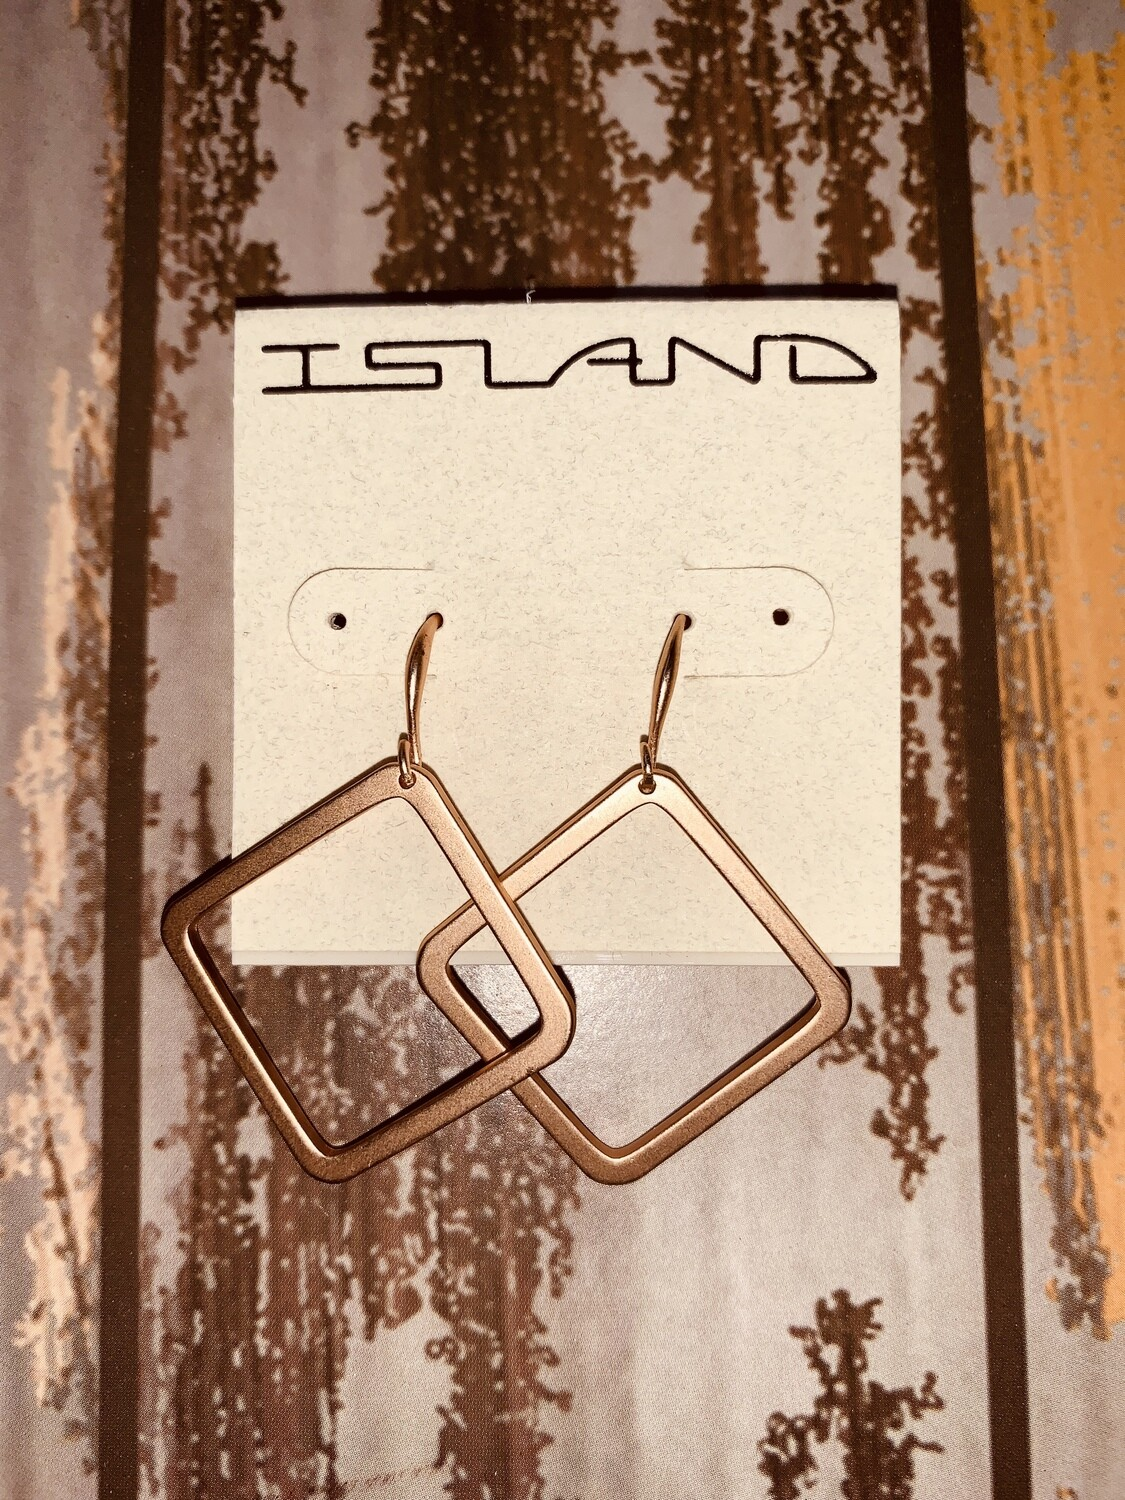 Square Dangling Copper Earrings 2 inches